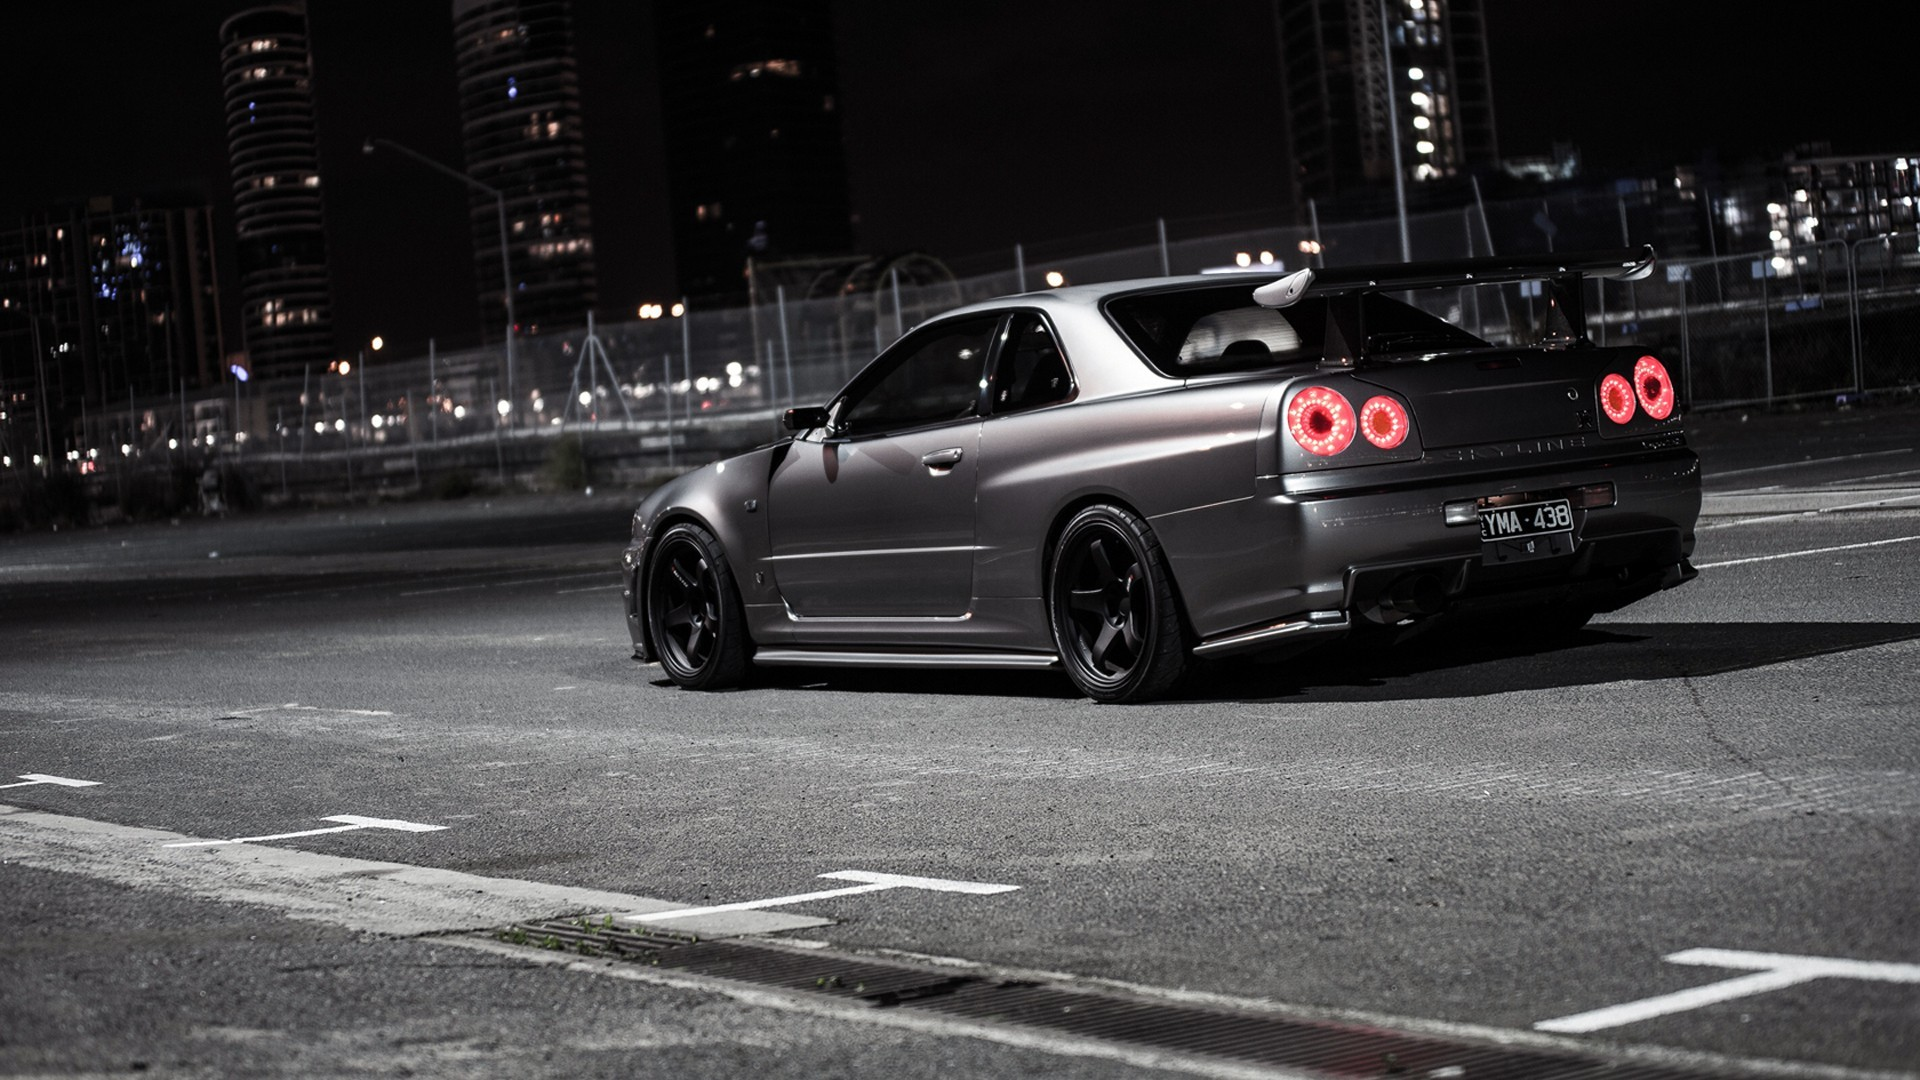 1920x1080 Tag nissan skyline gtr r wallpaper iphone Wallpapers High